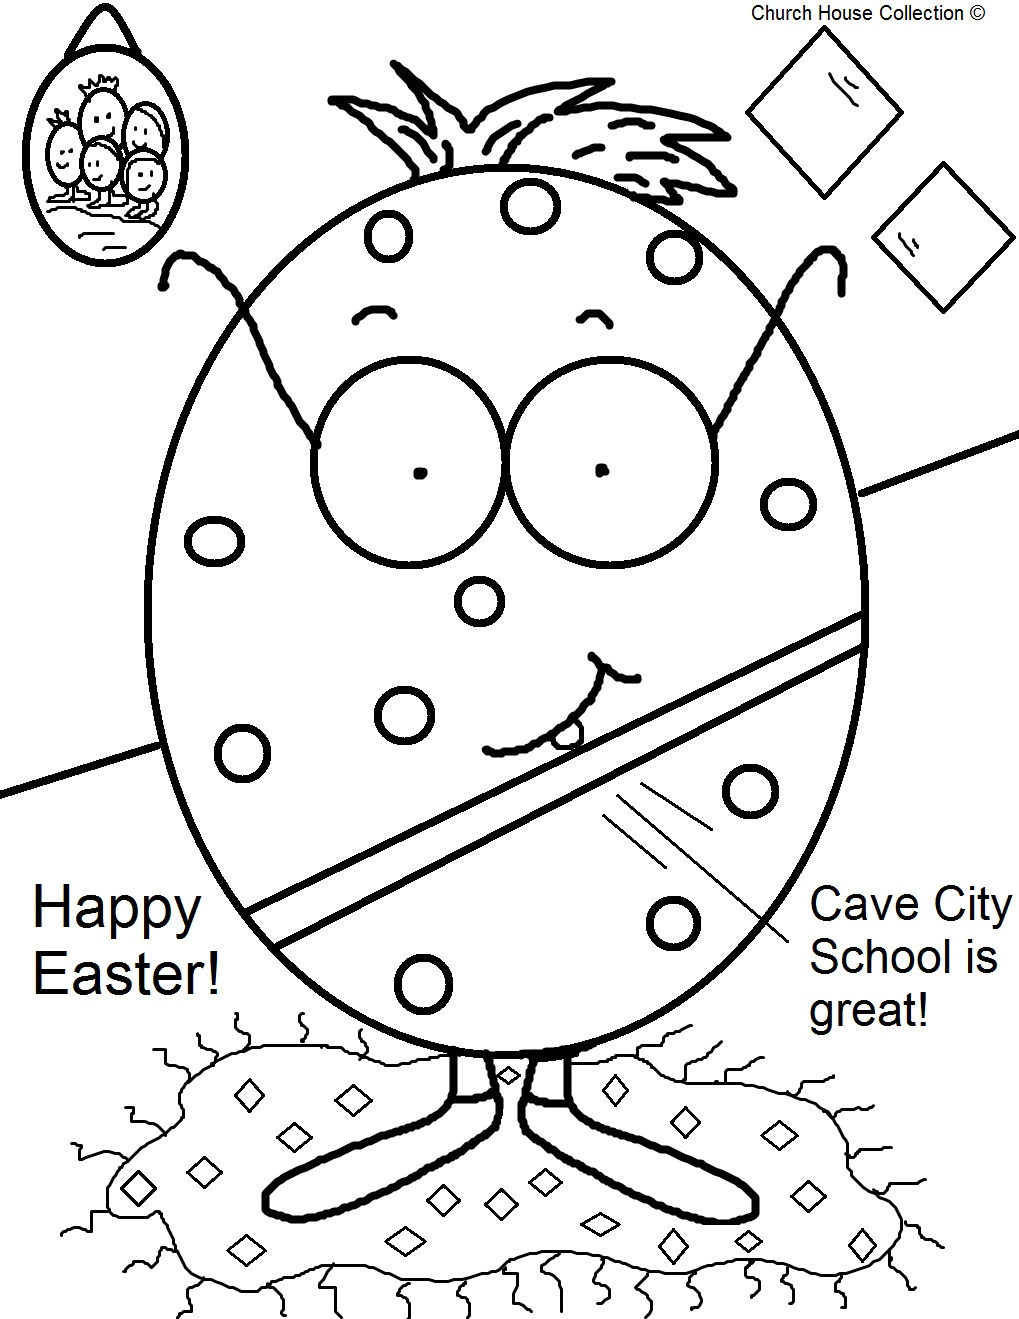 Church House Collection Blog Cave City School Easter Egg Coloring Pages